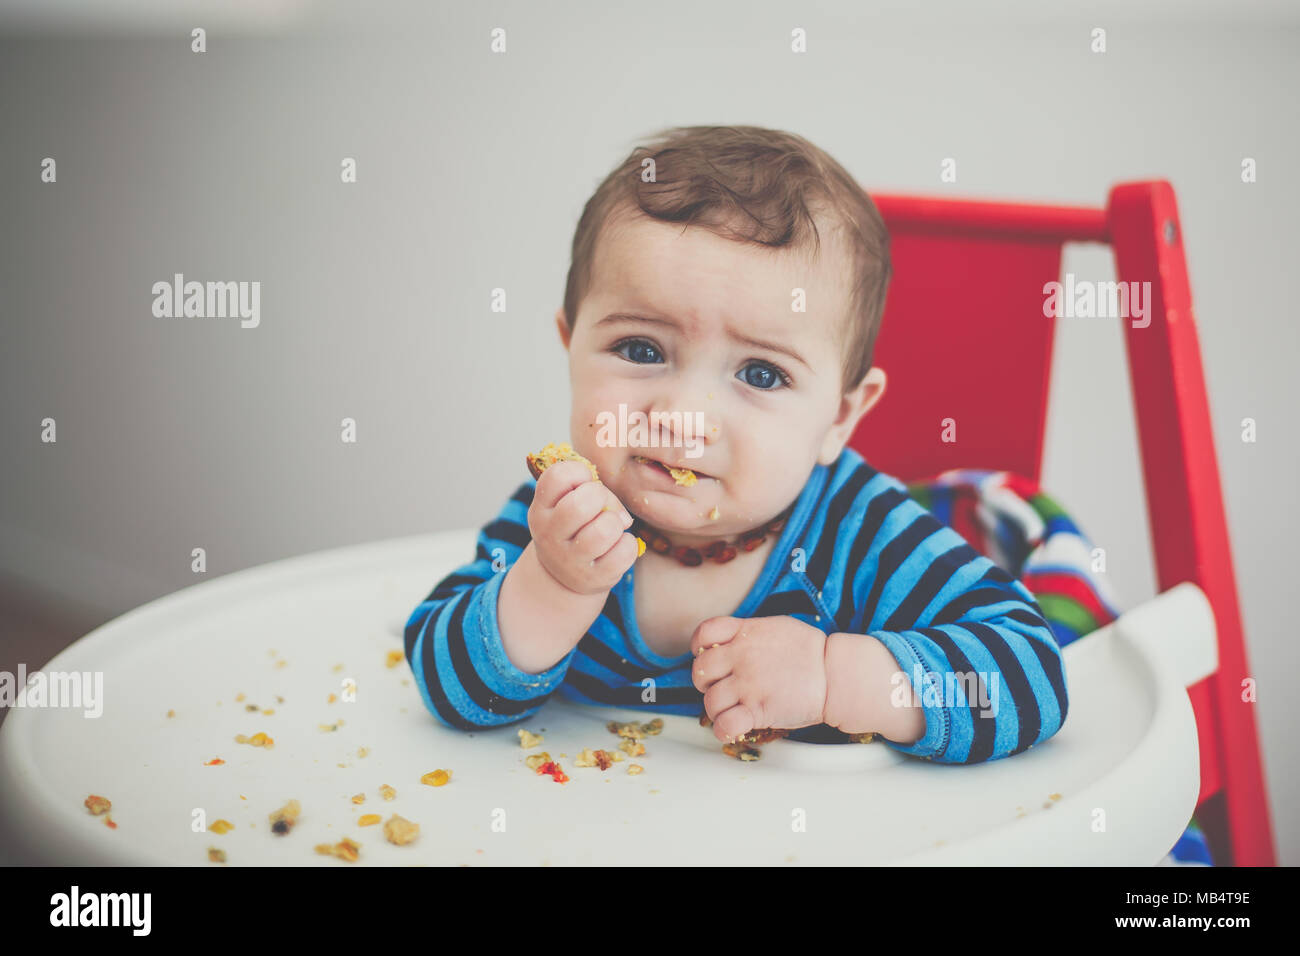 6 month old baby boy feeding himself in a high chair - Stock Image